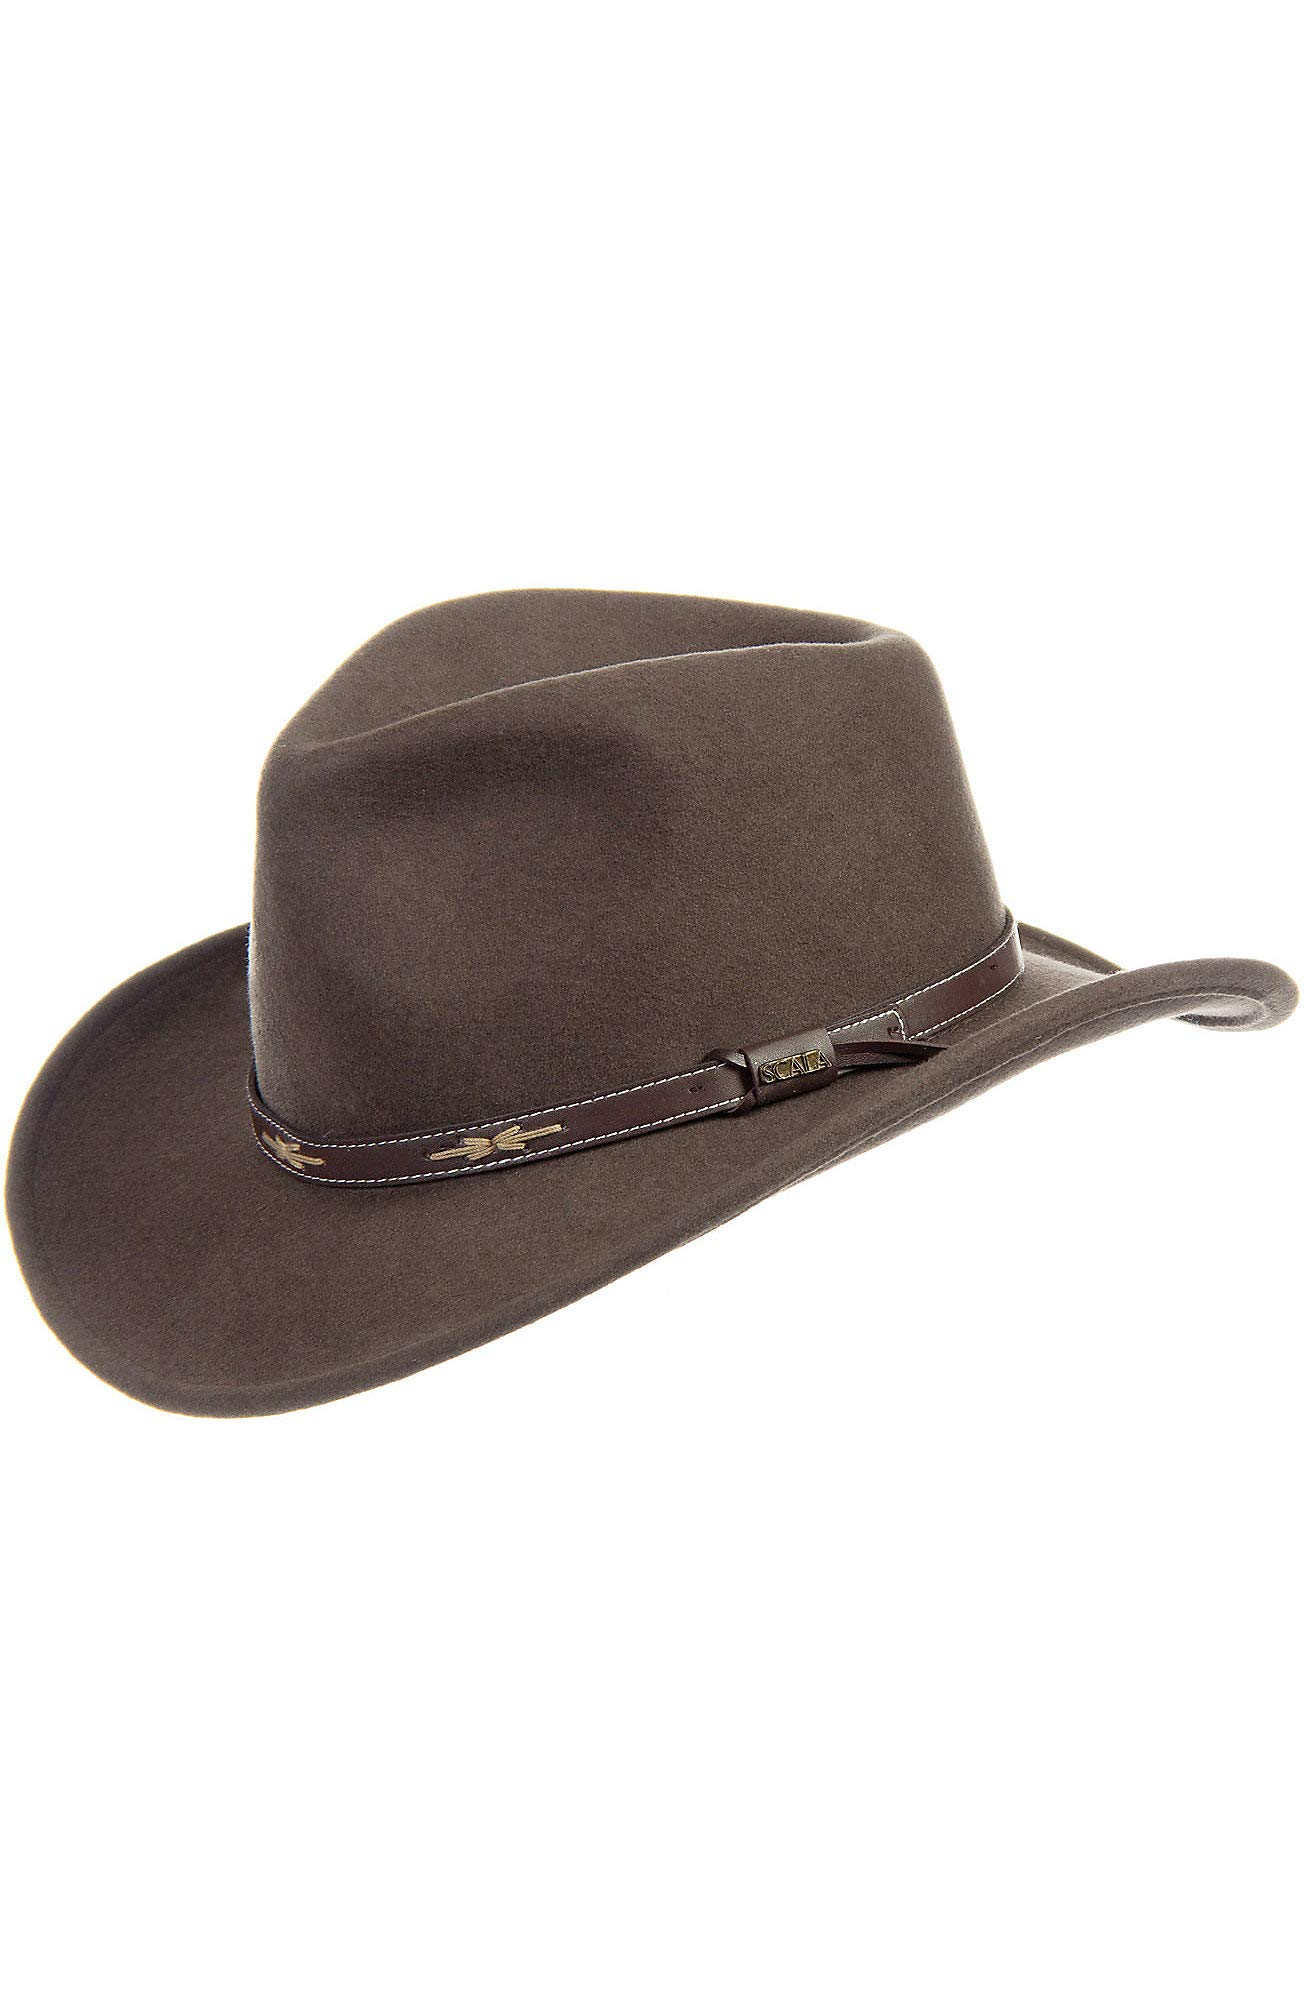 Overland Sheepskin Co Teton Crushable Wool Cowboy Hat